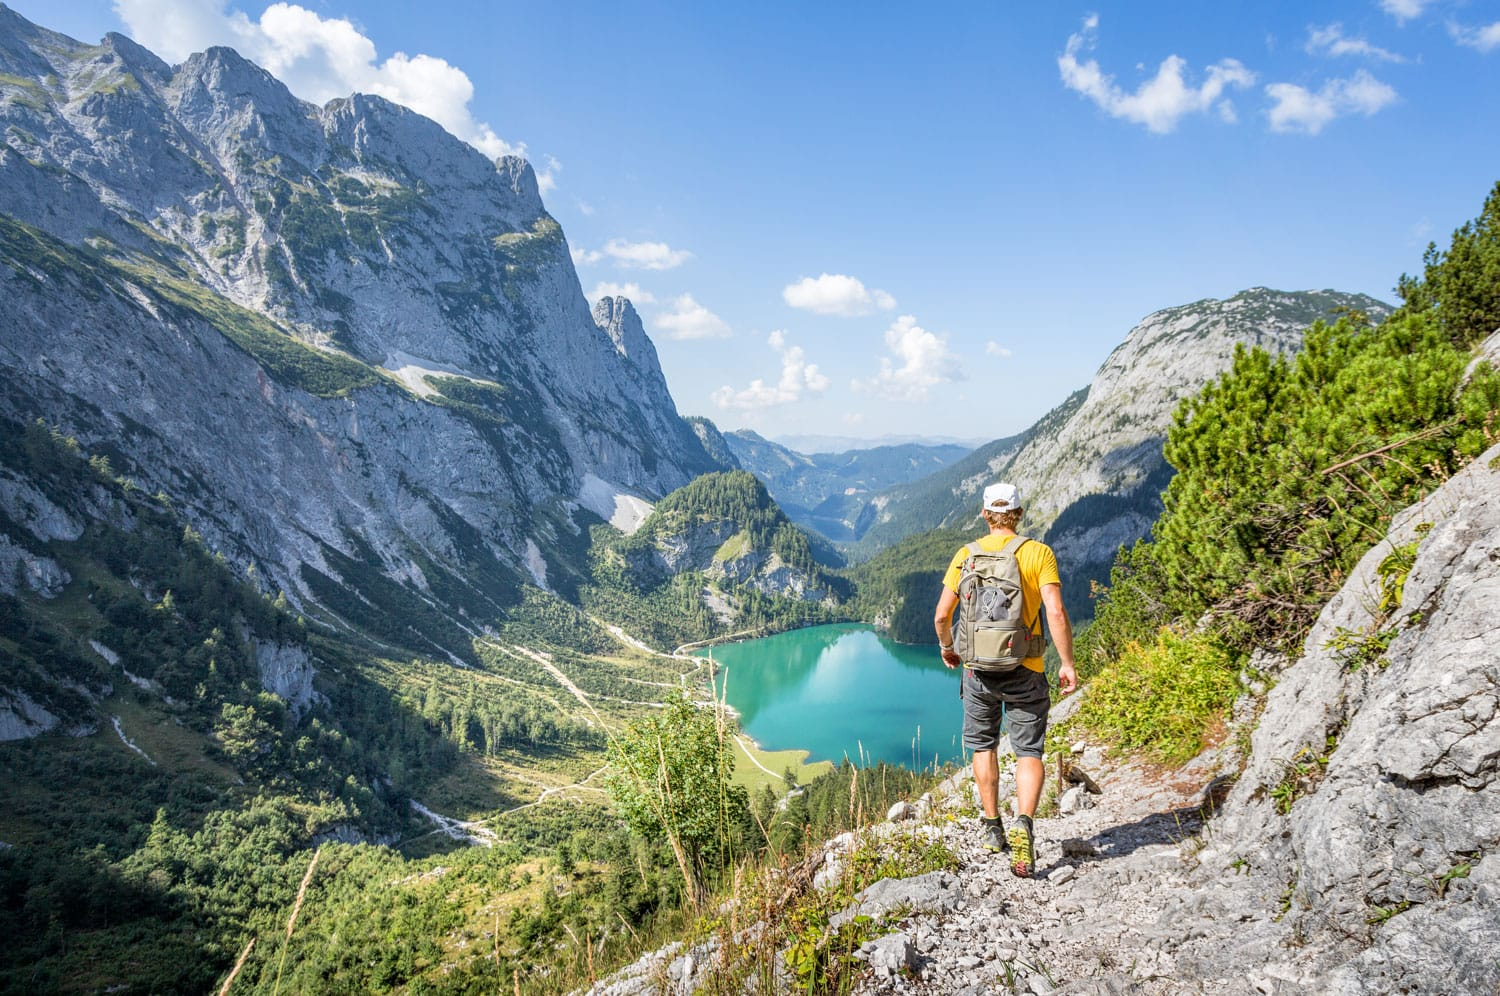 Mountaineer hiking in the mountains at Dachstein, Austria